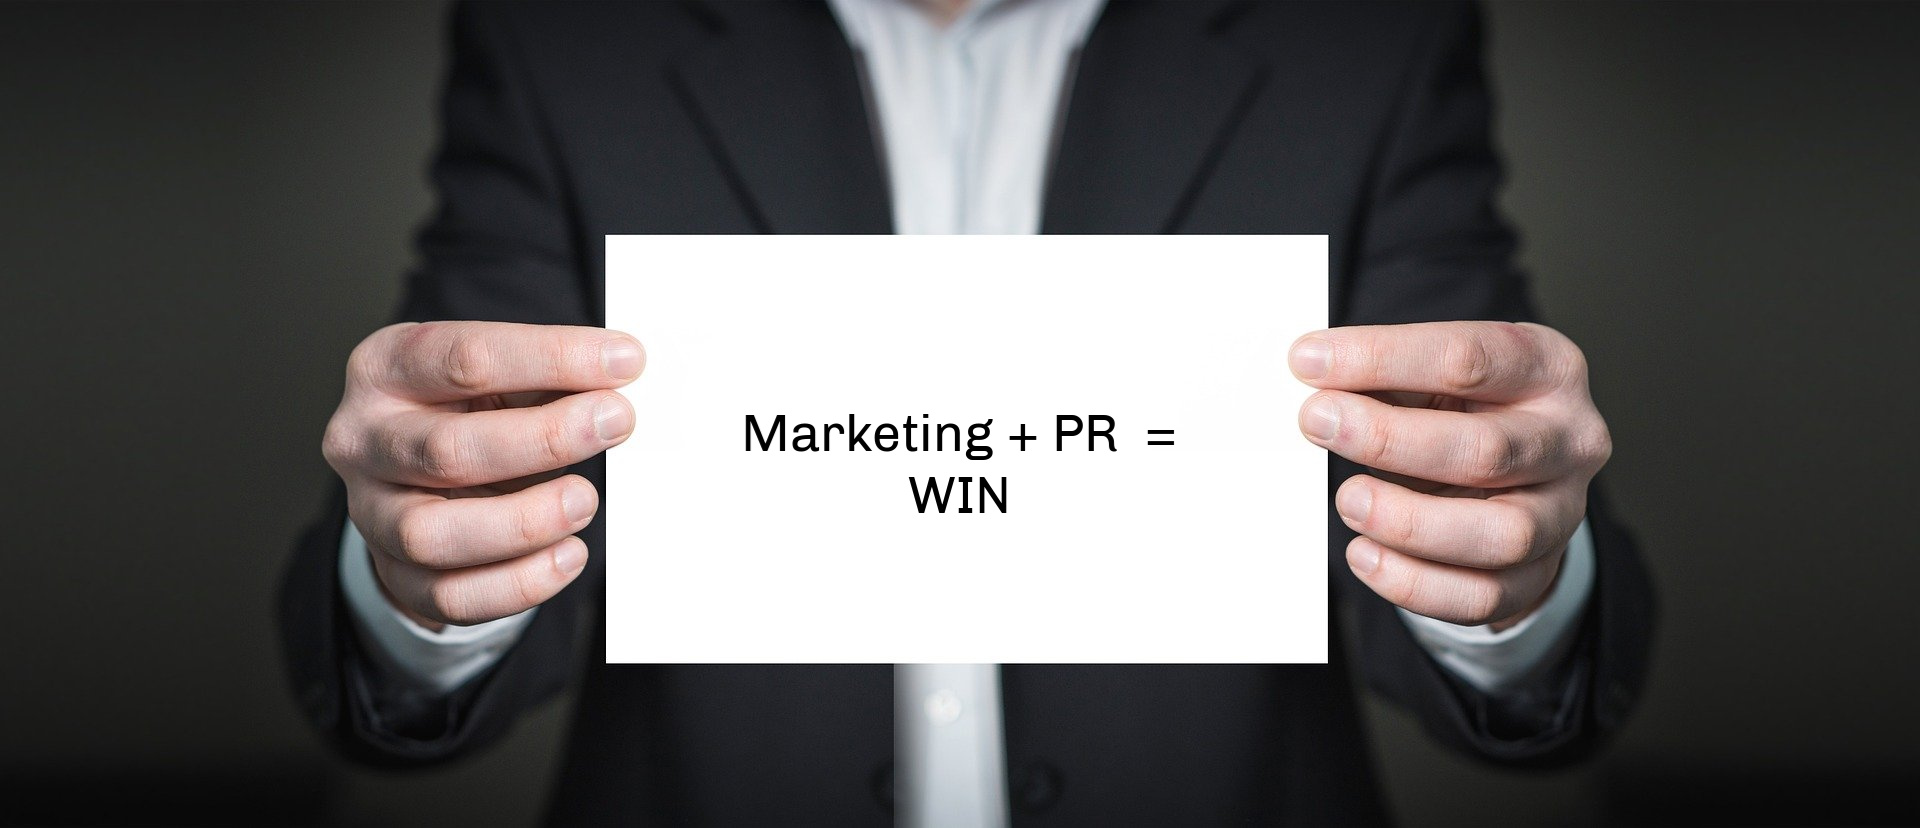 7 Things Marketers Should Know About Public Relations